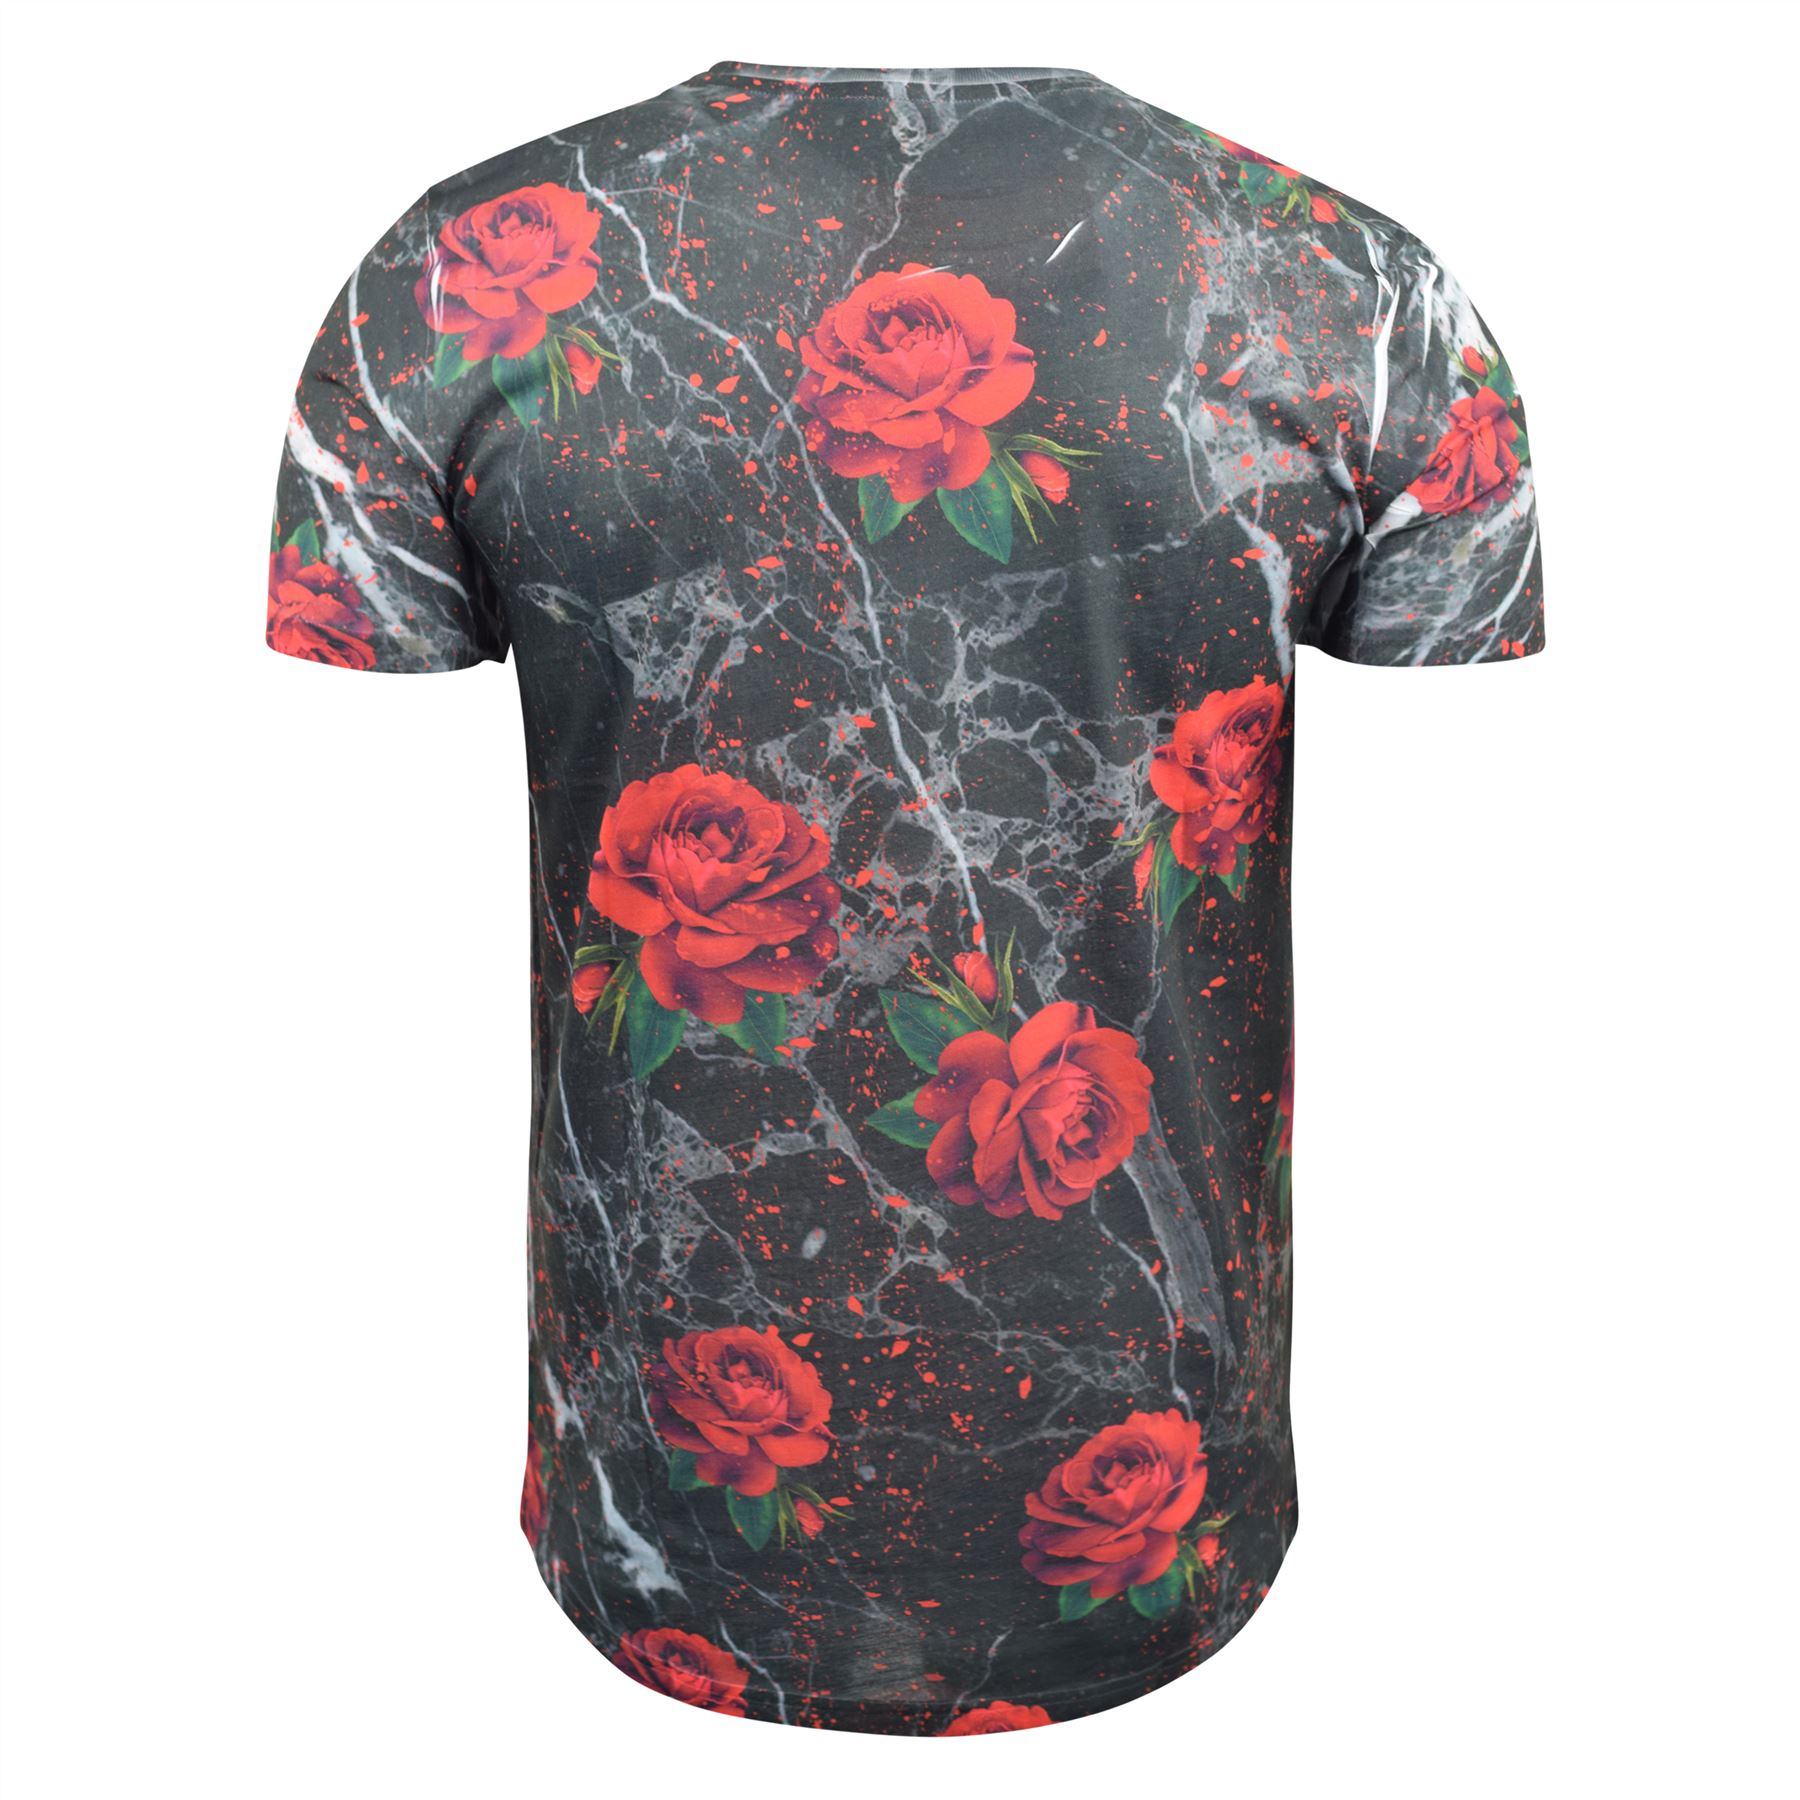 Mens-T-Shirt-Juice-Floral-Print-Flower-Crew-Neck-Tee-Top thumbnail 13